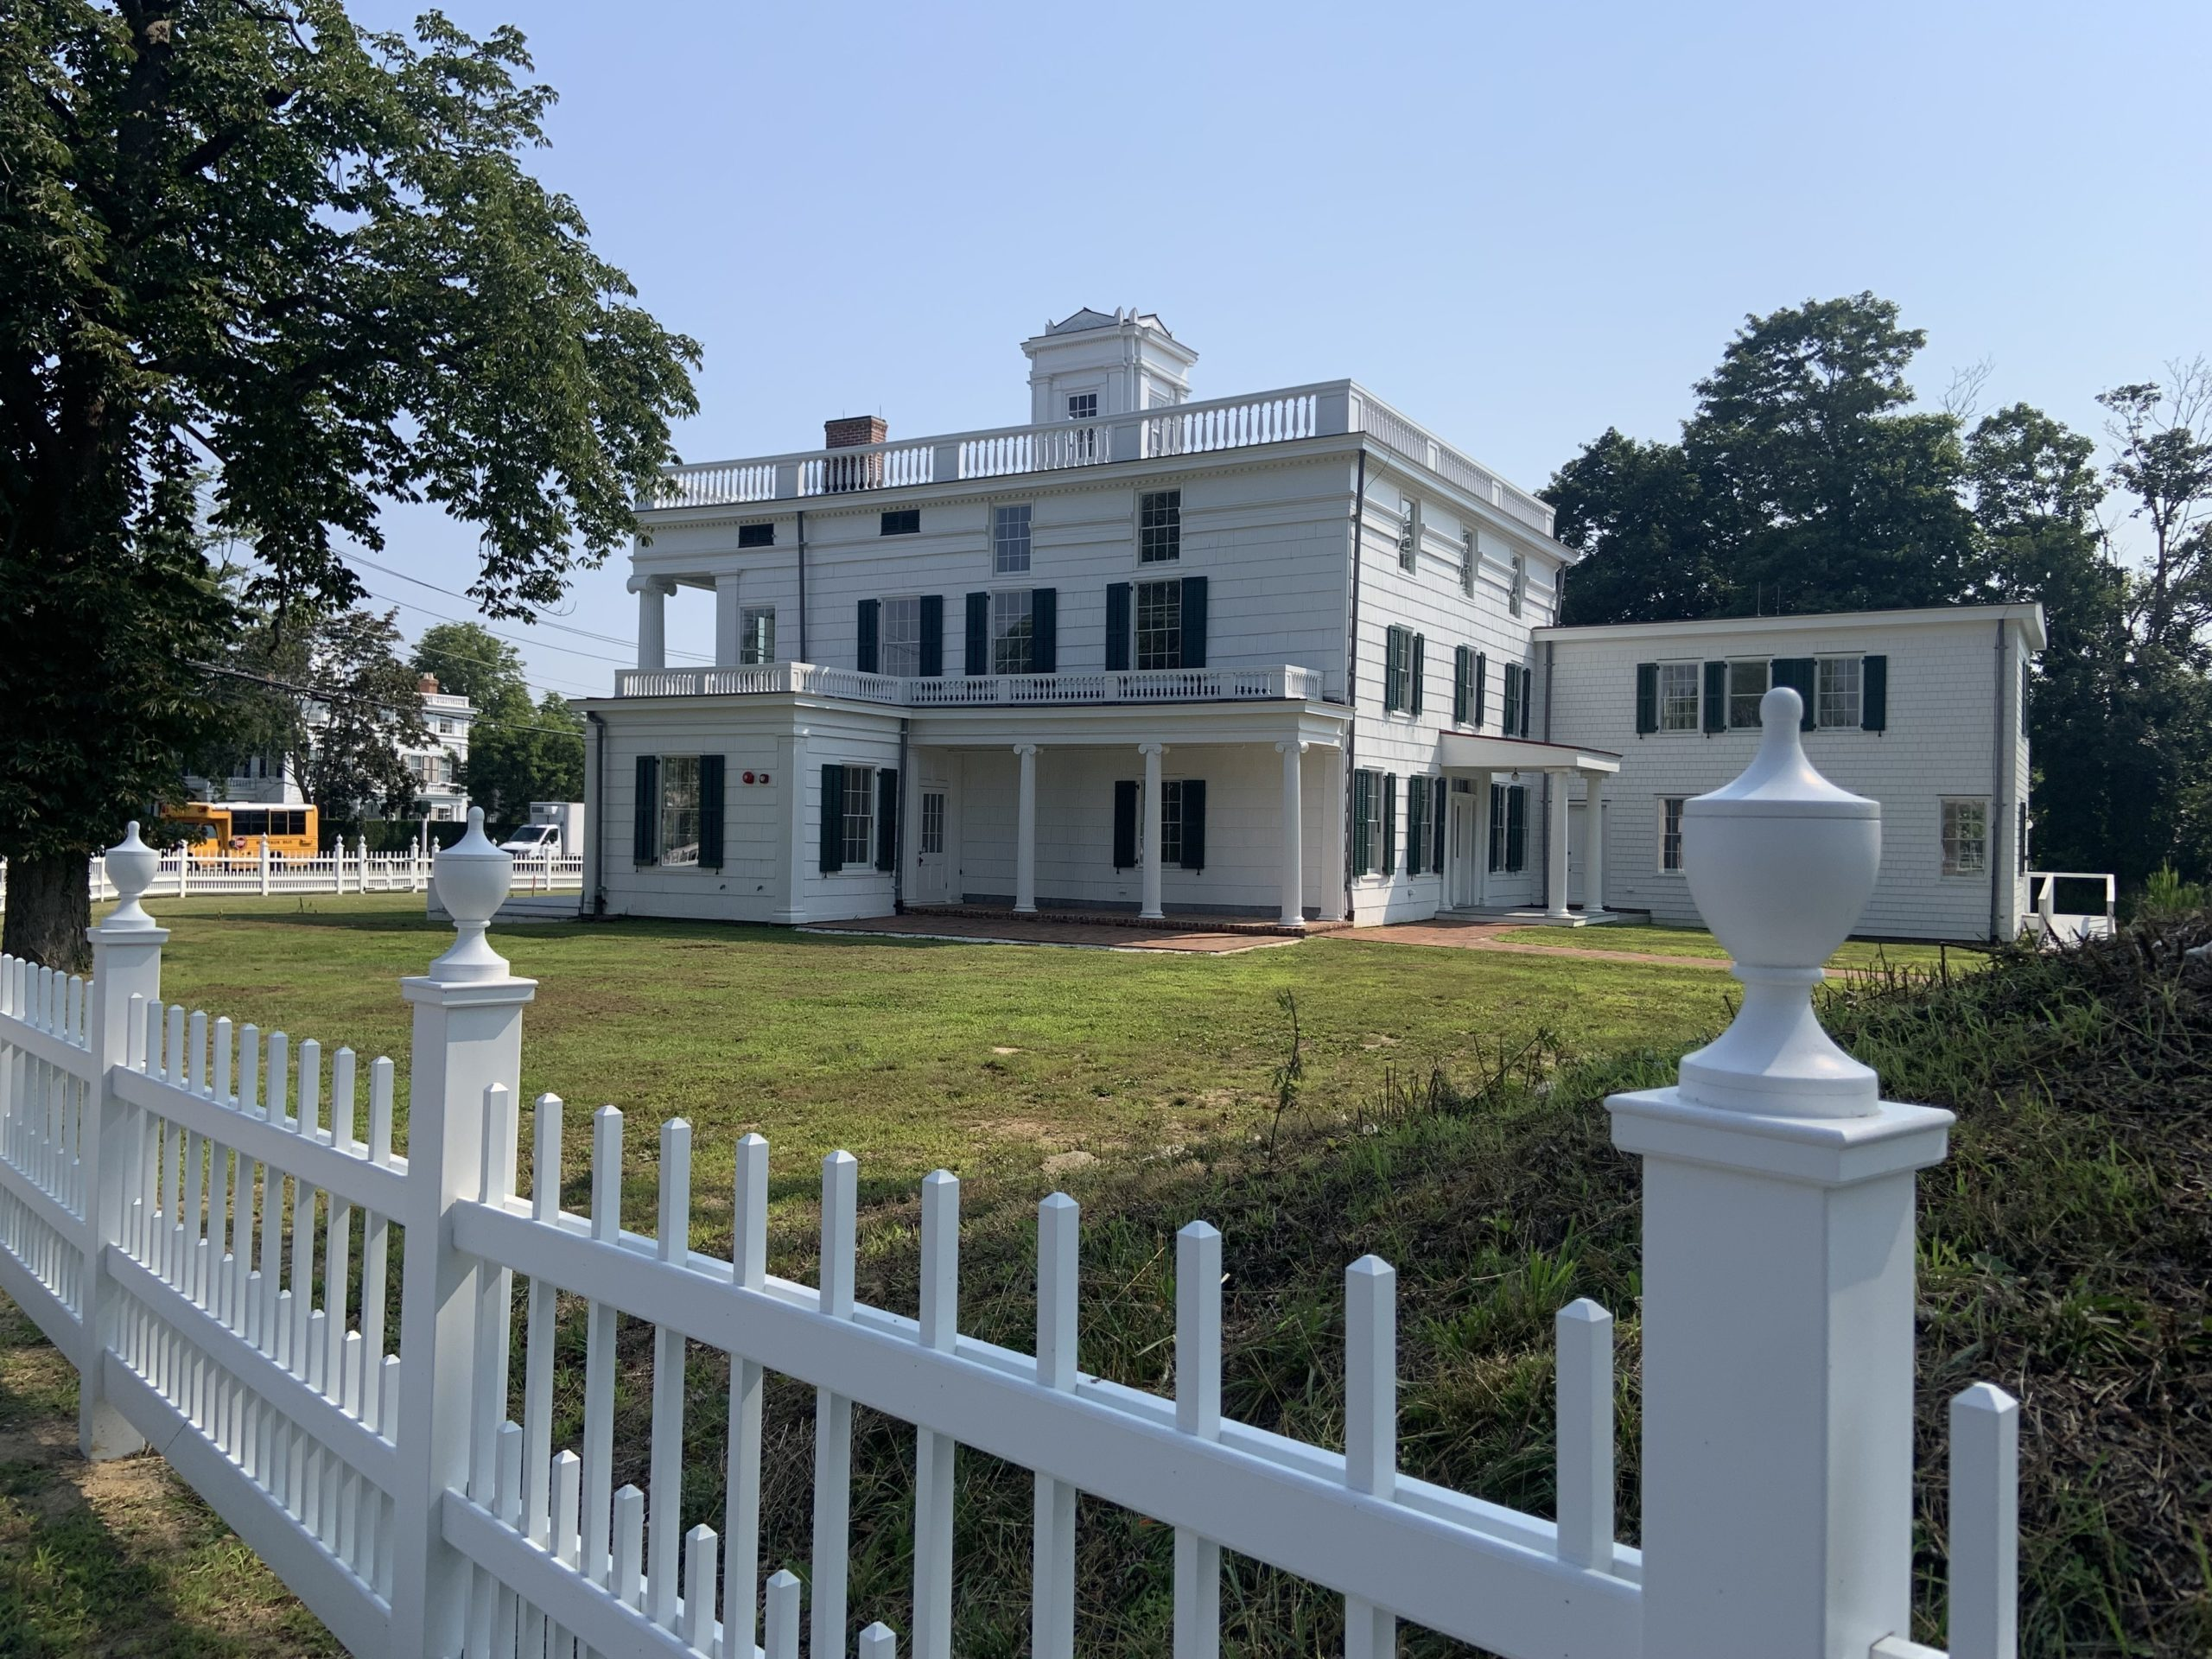 The Nathaniel Rogers House, the new home of the Bridgehampton Museum, as seen from Ocean Road. STEPHEN J. KOTZ